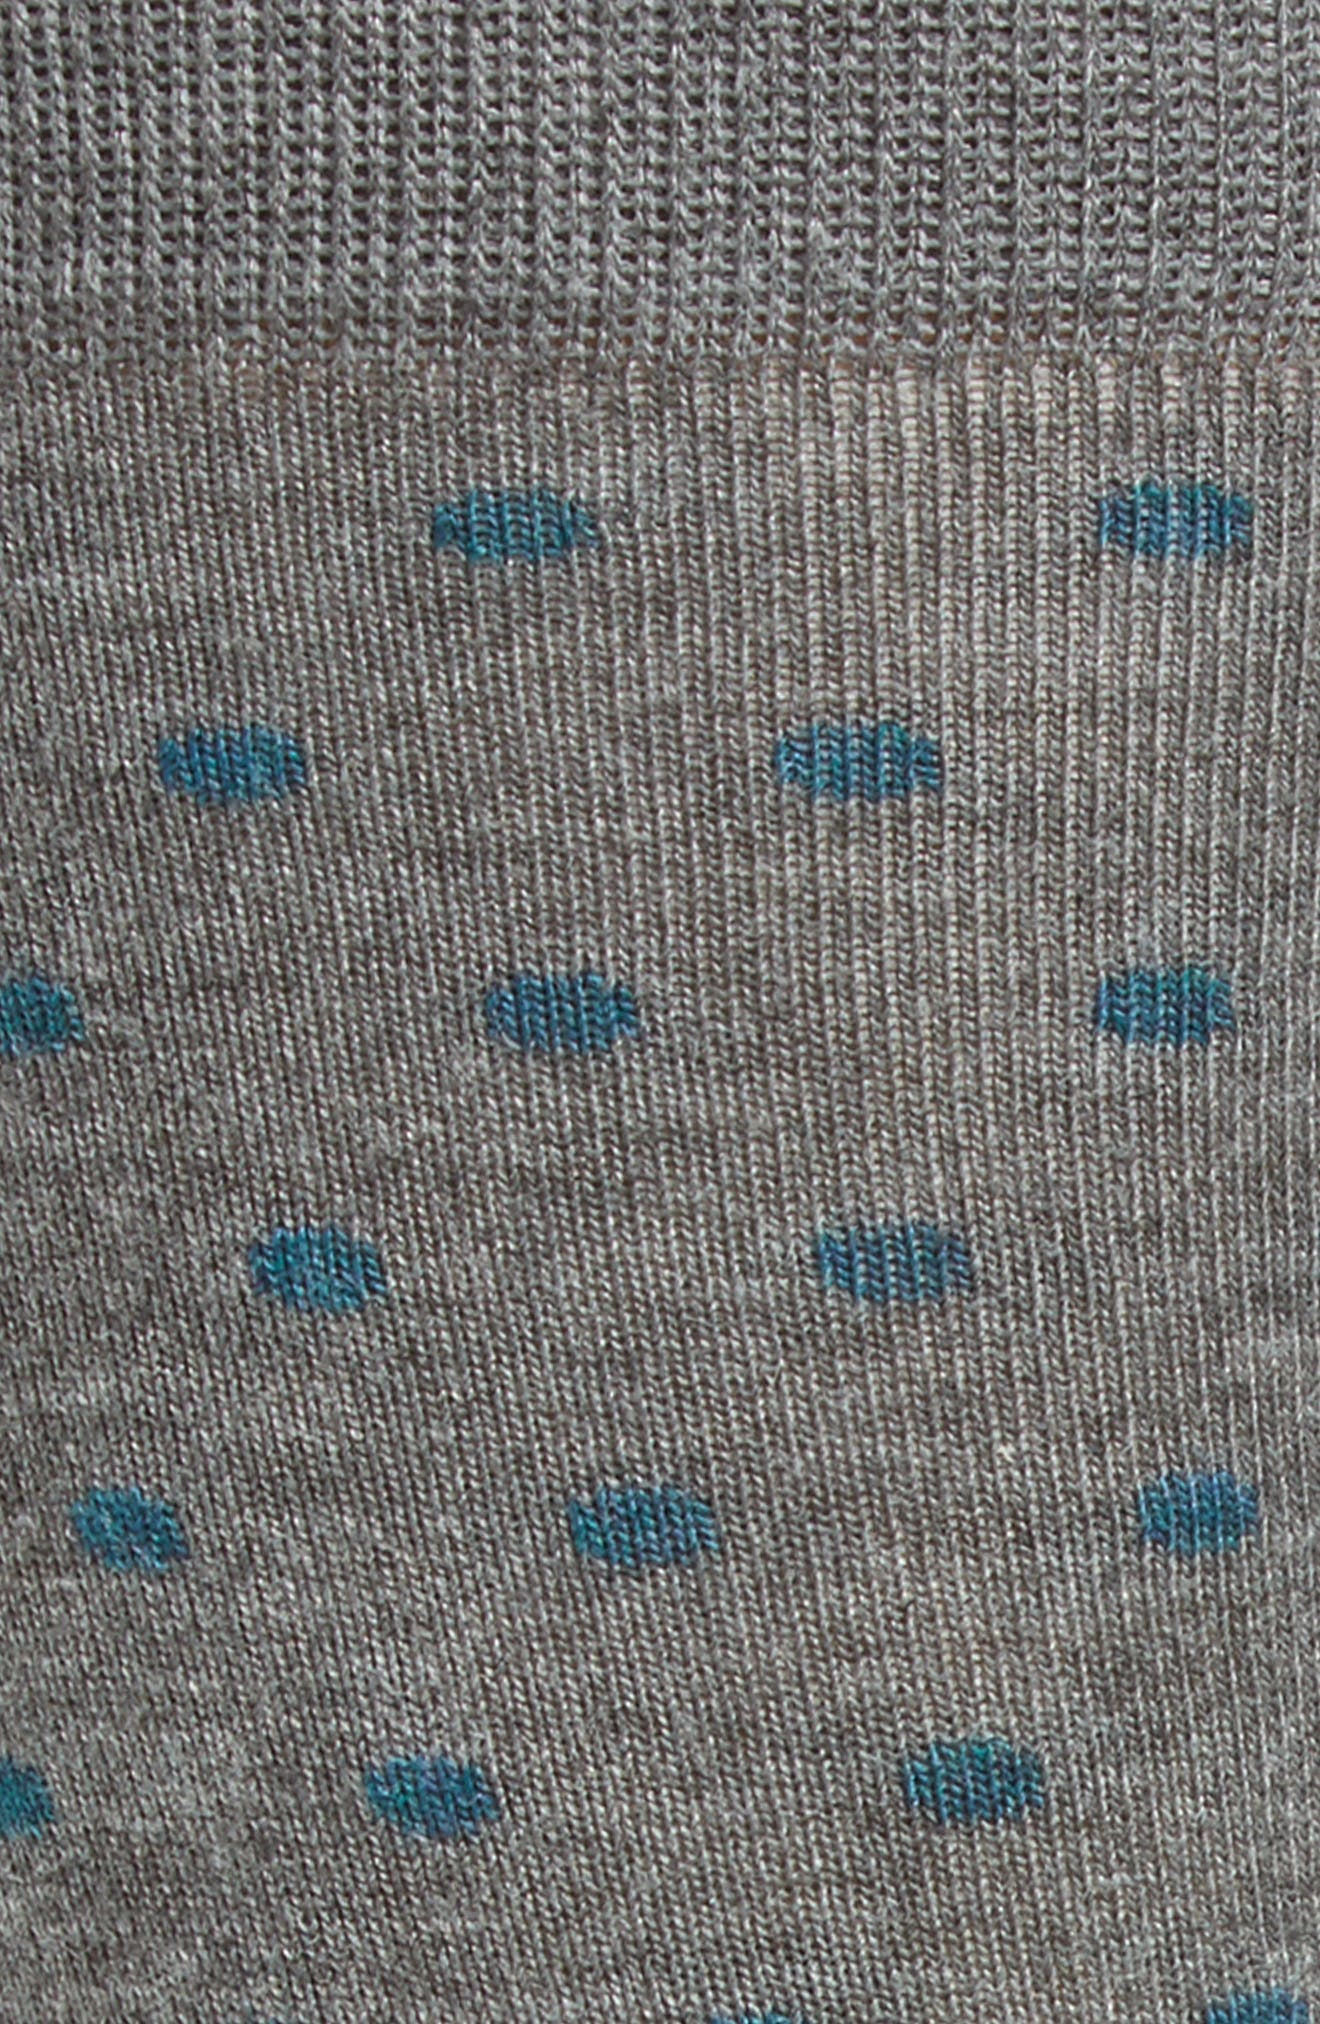 Dot Socks,                             Alternate thumbnail 2, color,                             Grey Heather